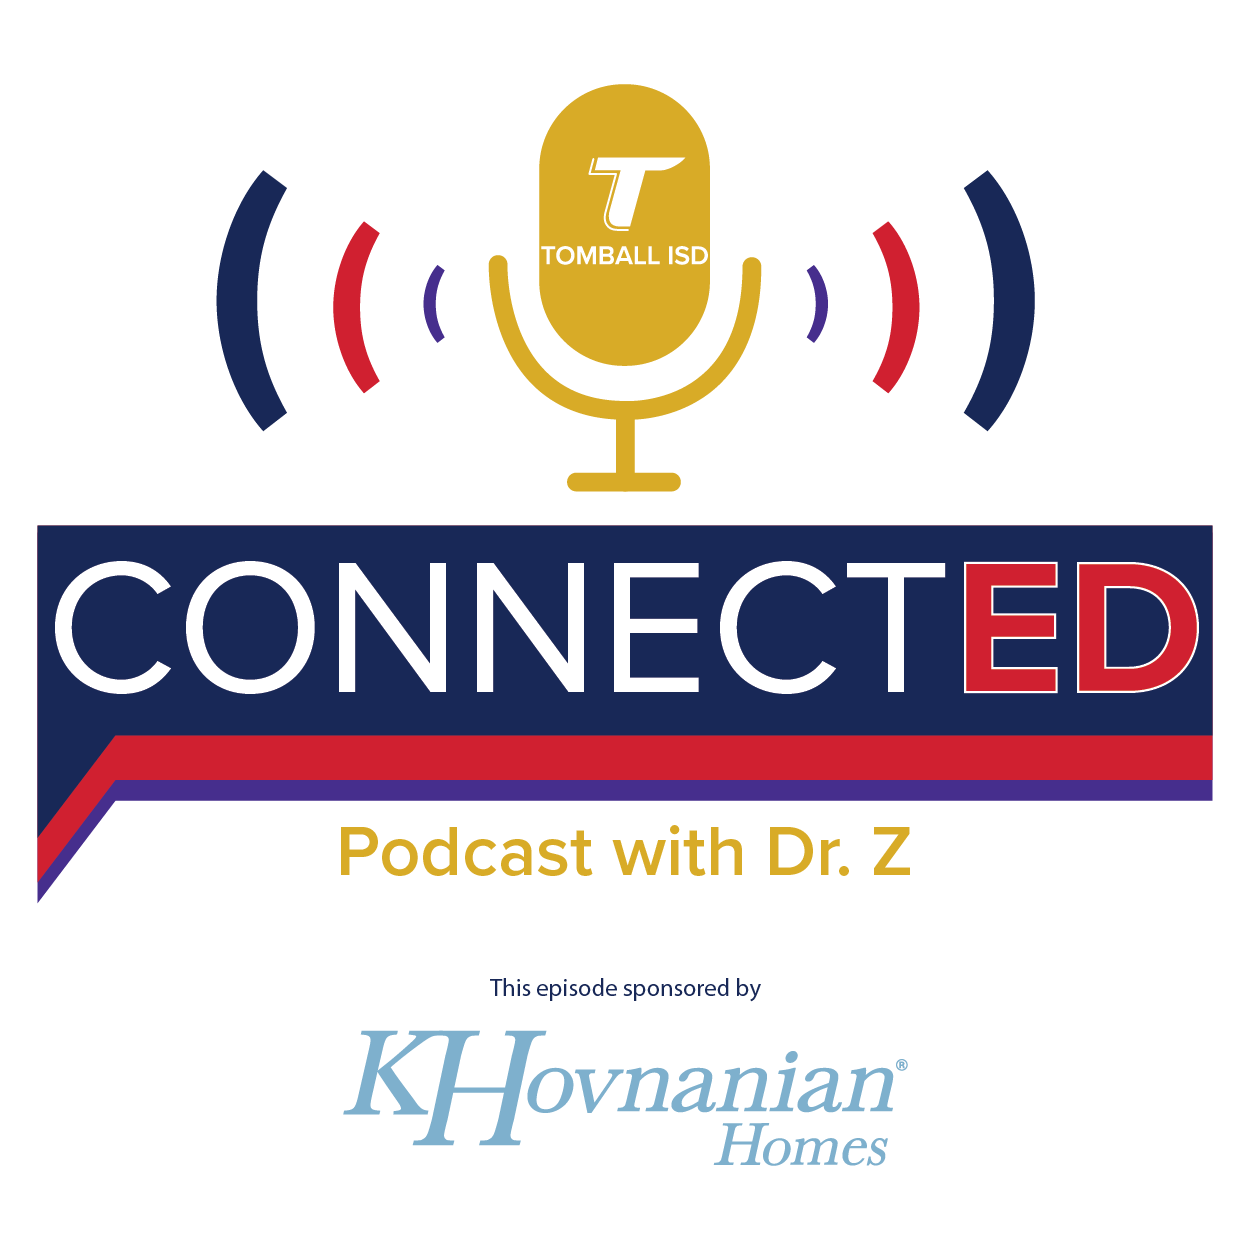 ConnectED with Dr. Z sponsored by K Hovnanian Homes